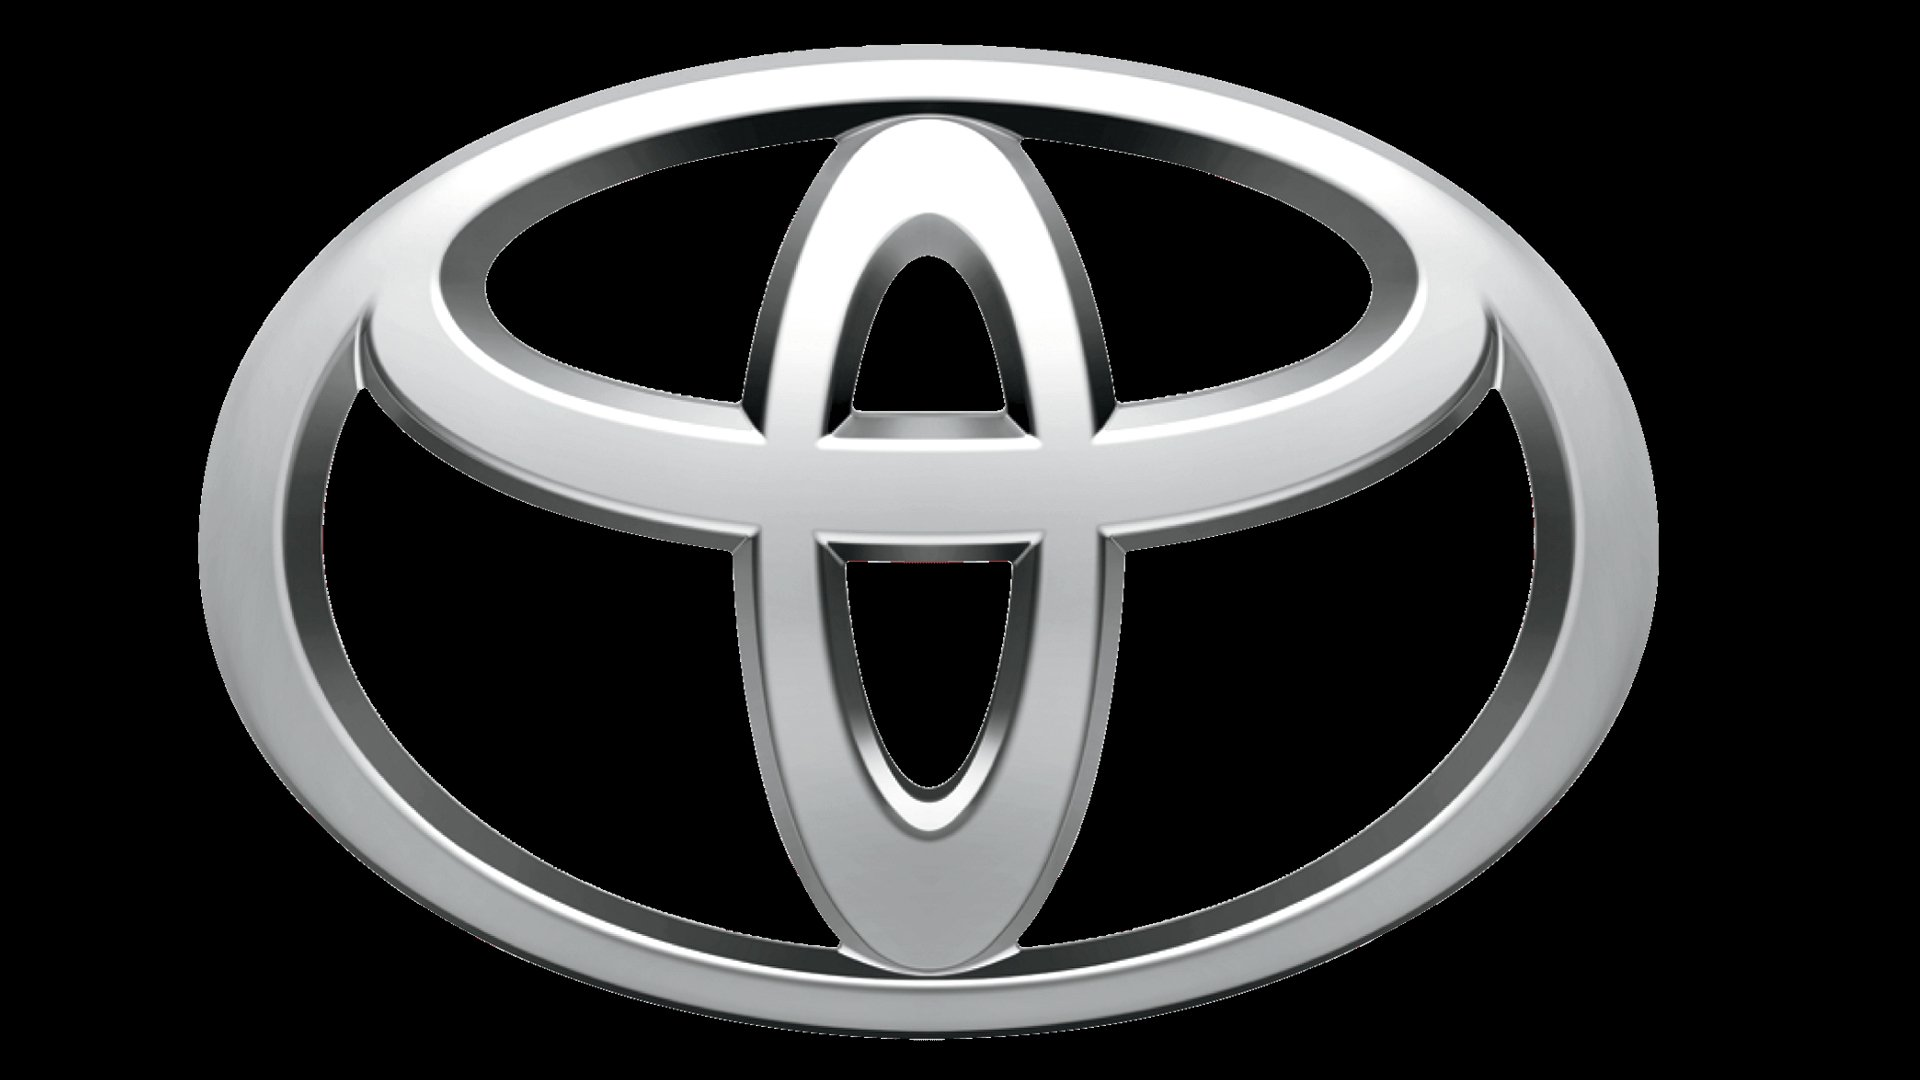 Toyota Logo, Toyota Symbol, Meaning, History and Evolution